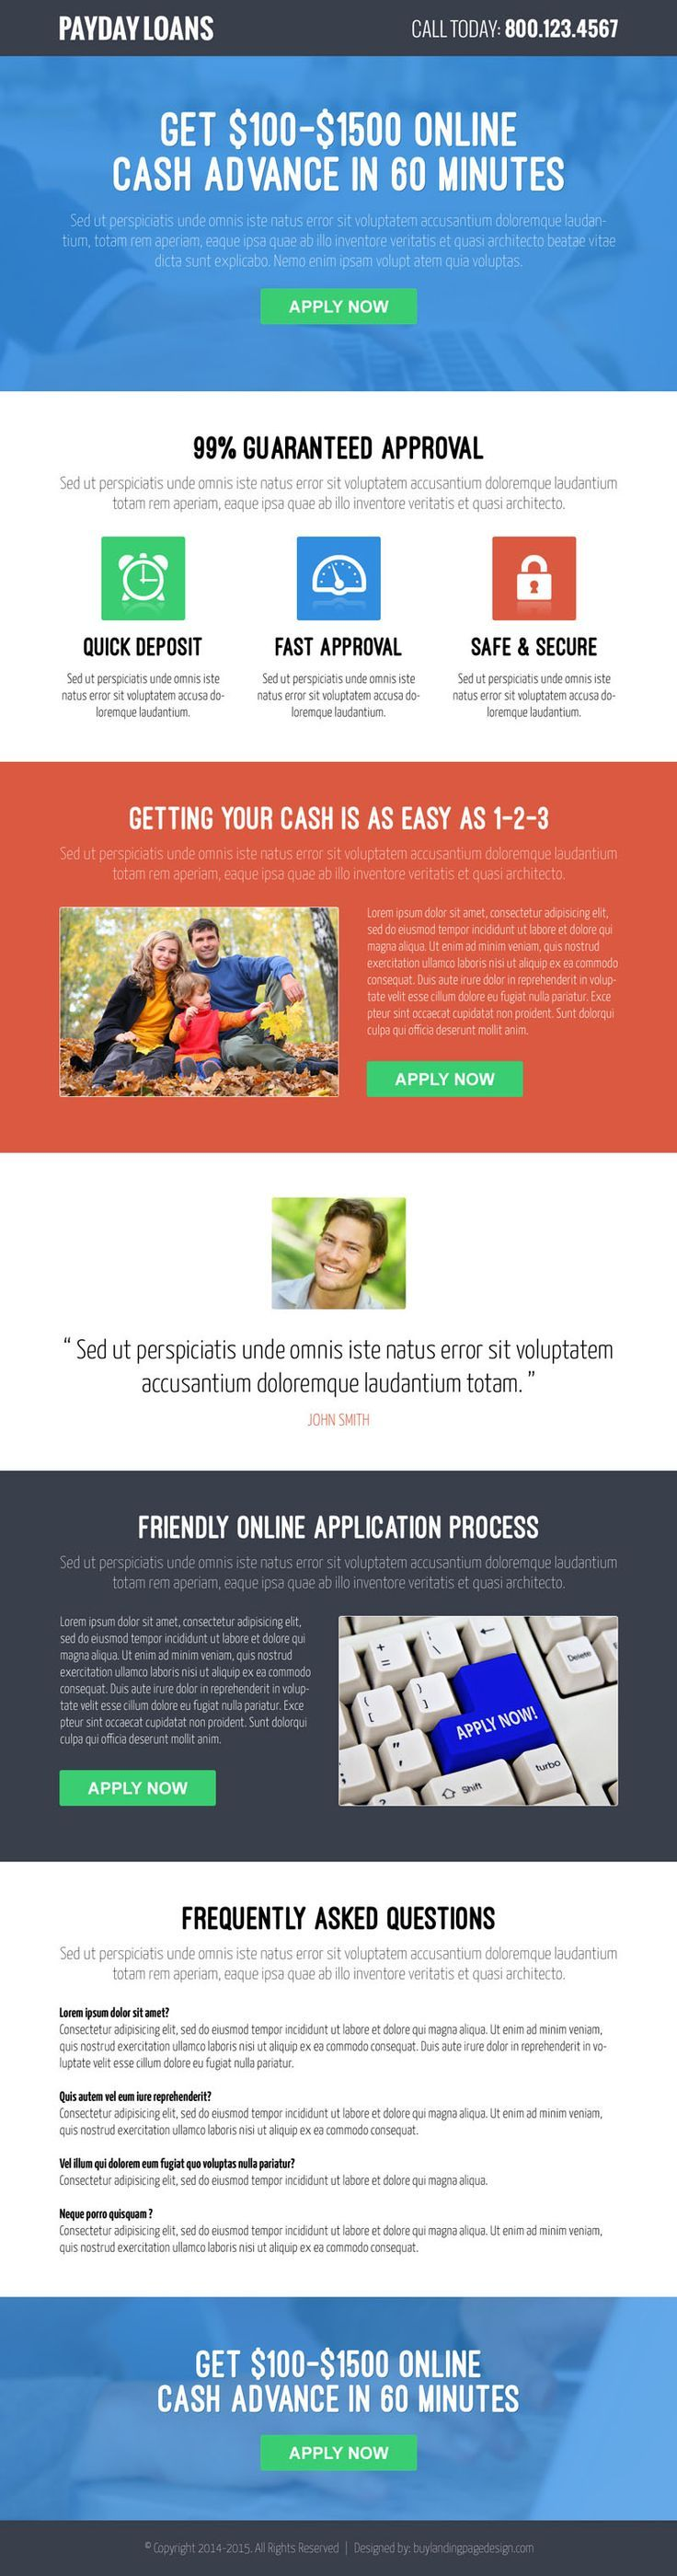 Instant cash loans by text image 8